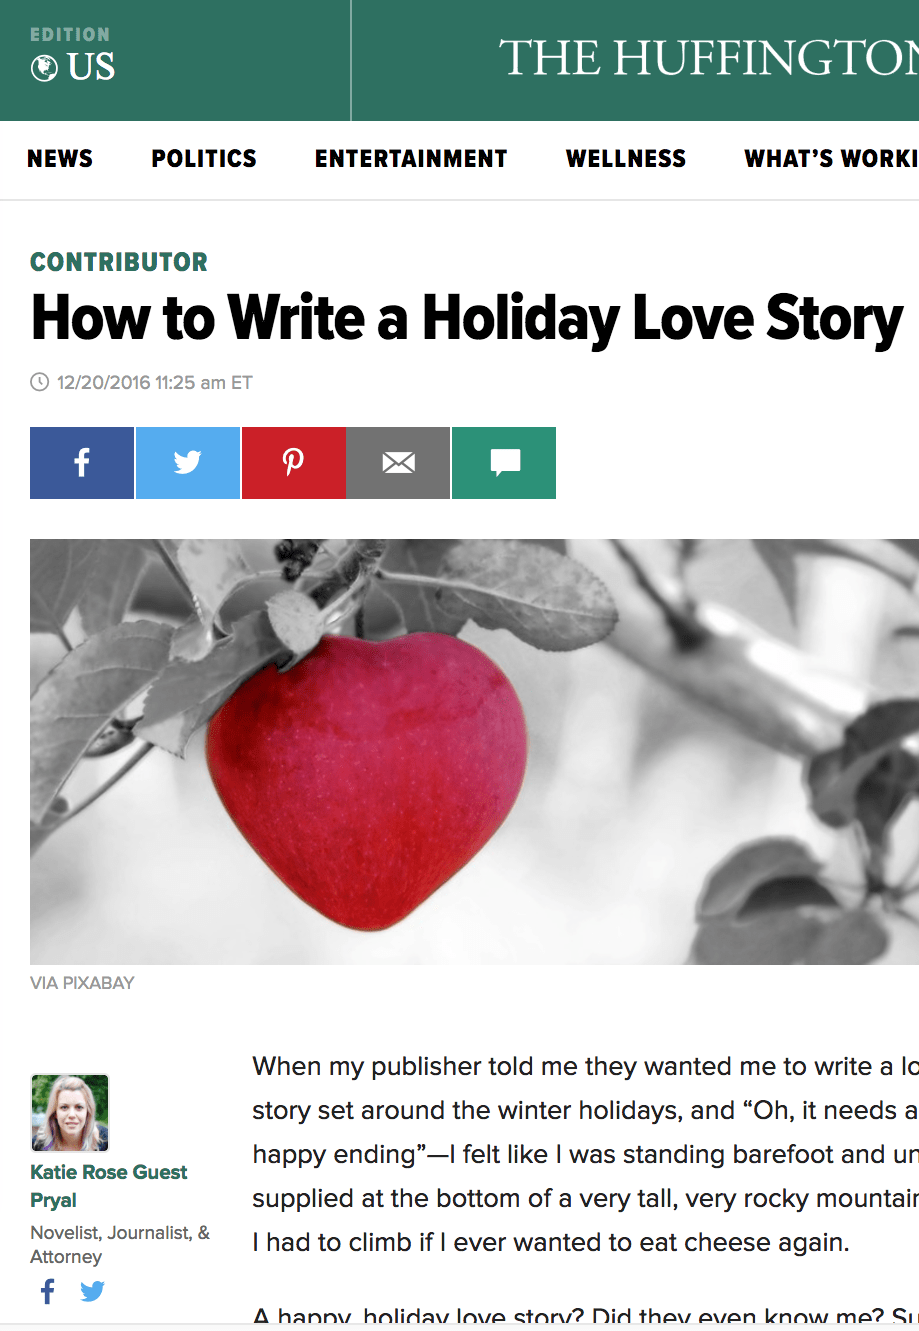 Huffington Post: How to Write a Holiday Love Story